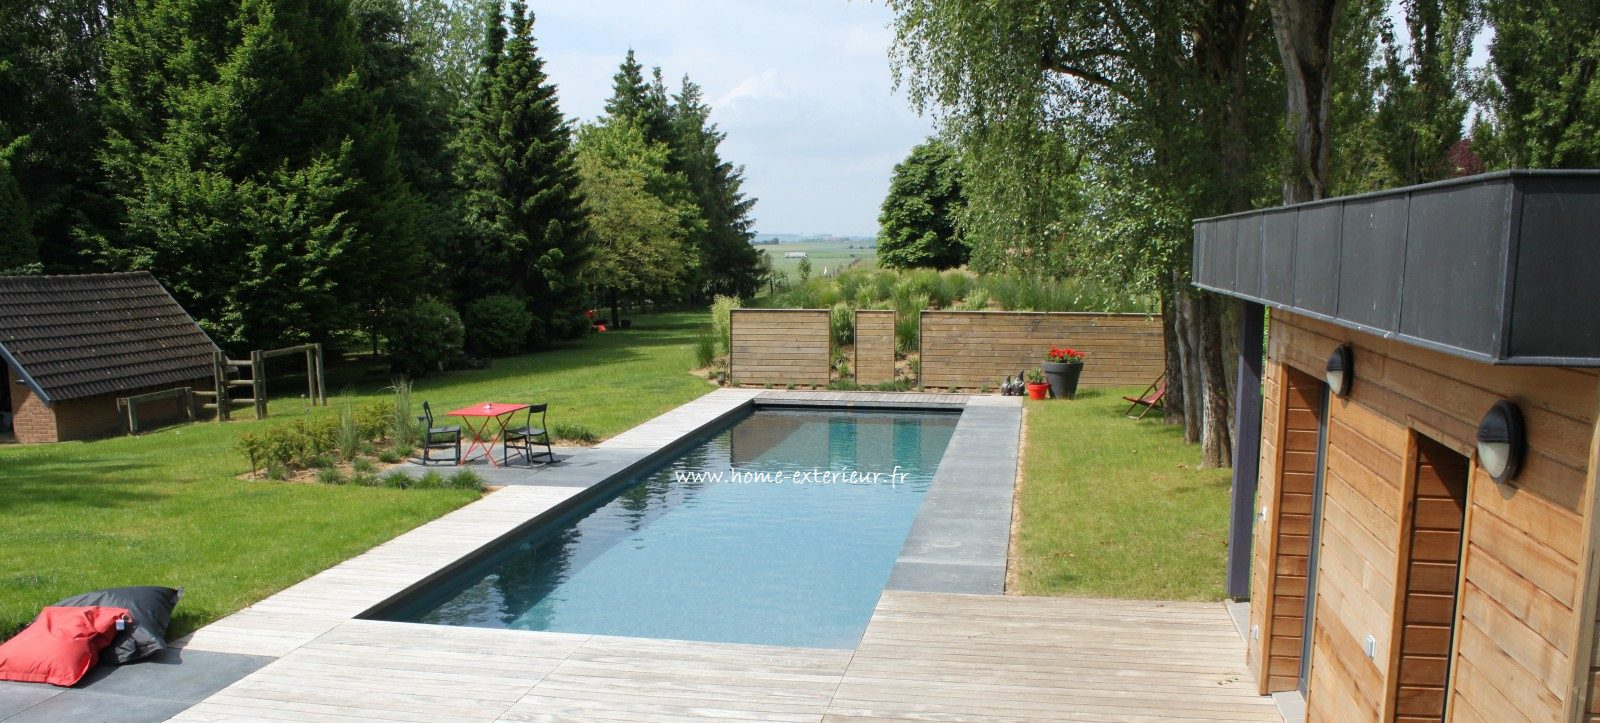 Architecte paysagiste terrasses jardins nord lille for Amenagement exterieur piscine